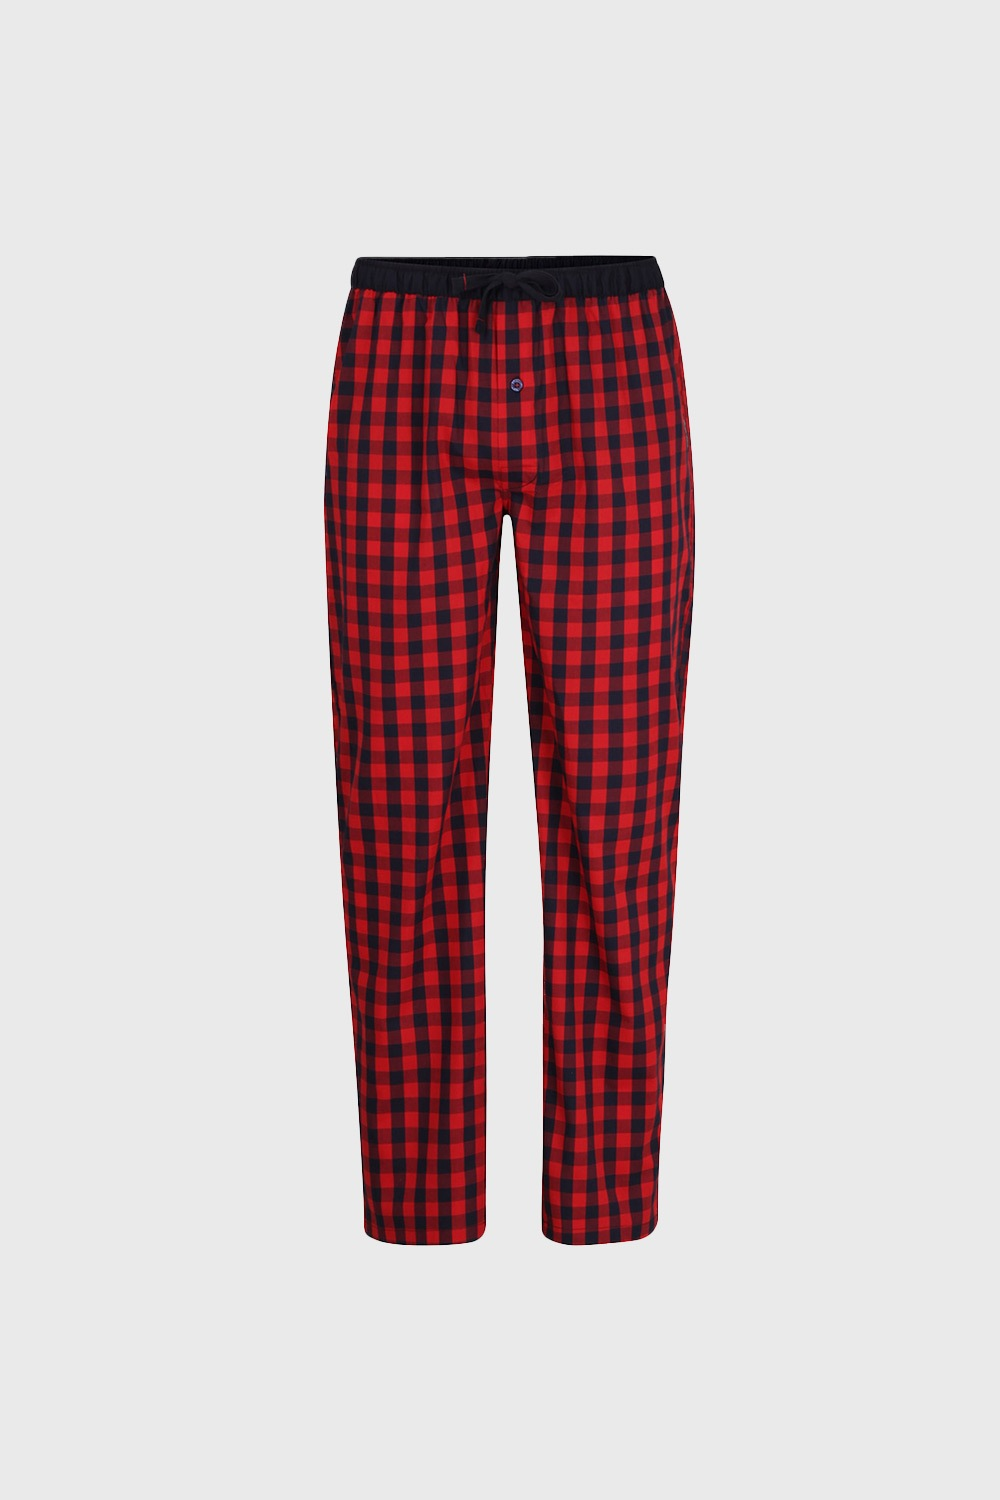 Ceceba Mars Red Pyjama Trousers